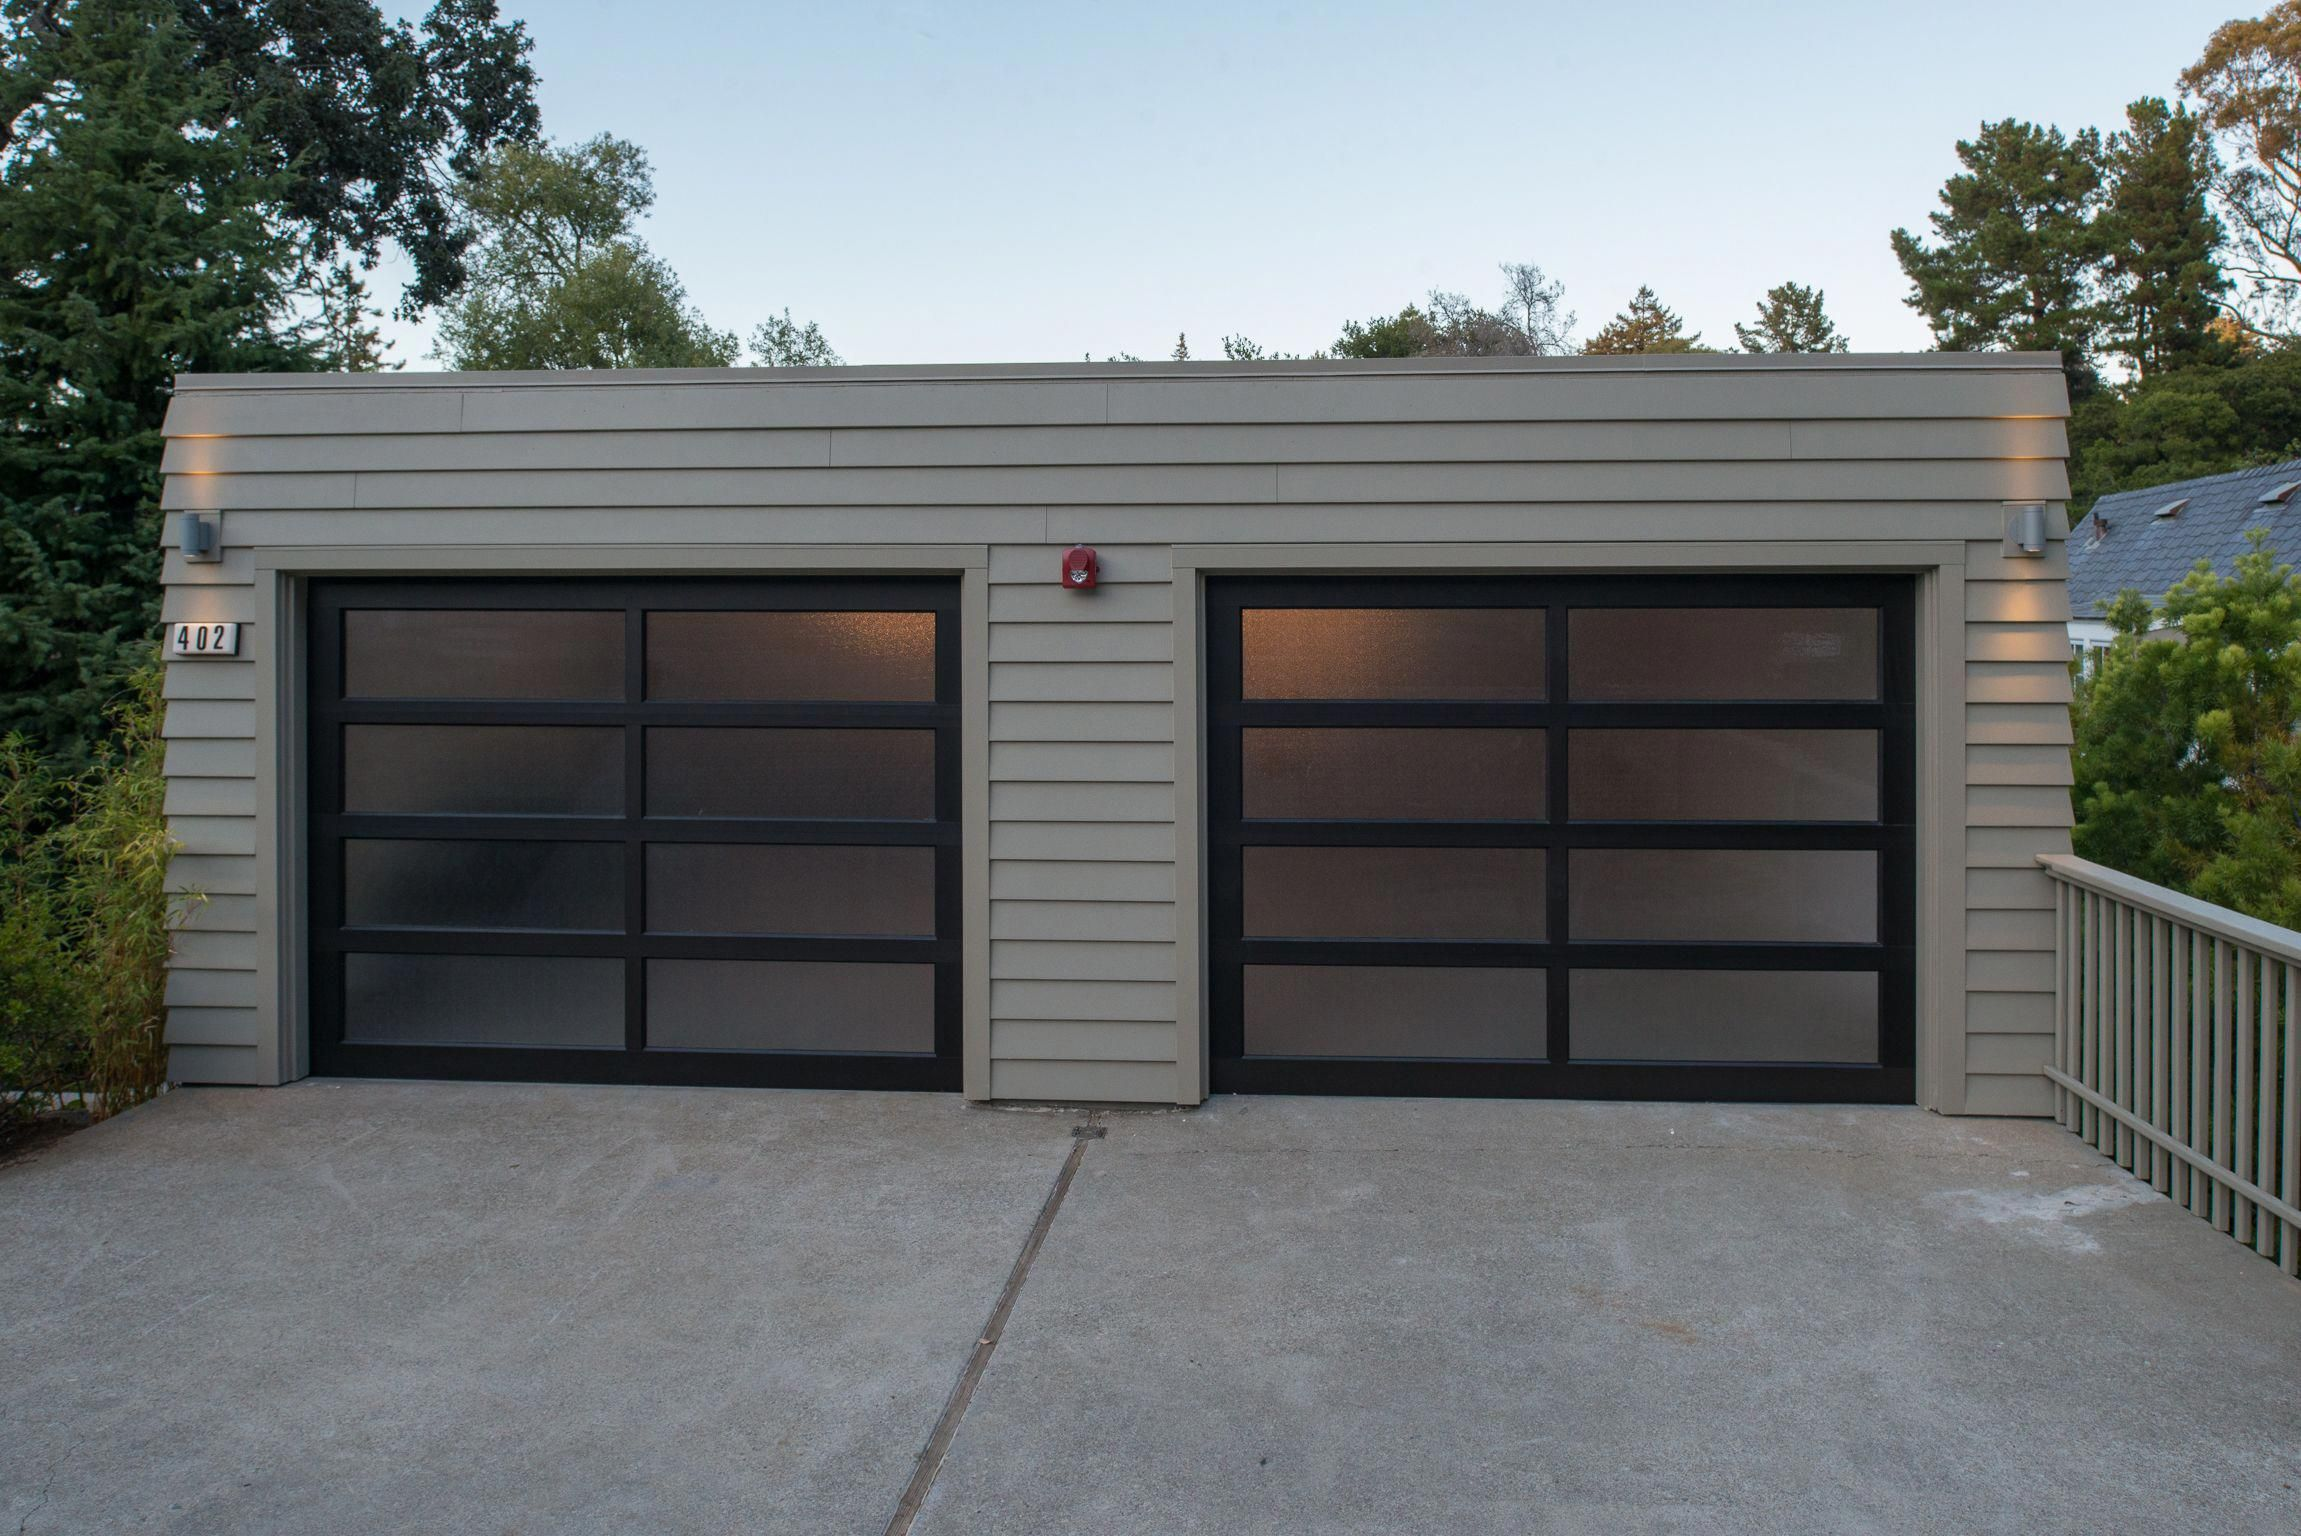 A Contemporary Garage With Beige Siding And A Black Framed Garage Door The Flat Top Roof And Unique Garage Doors Contemporary Garage Doors Modern Garage Doors